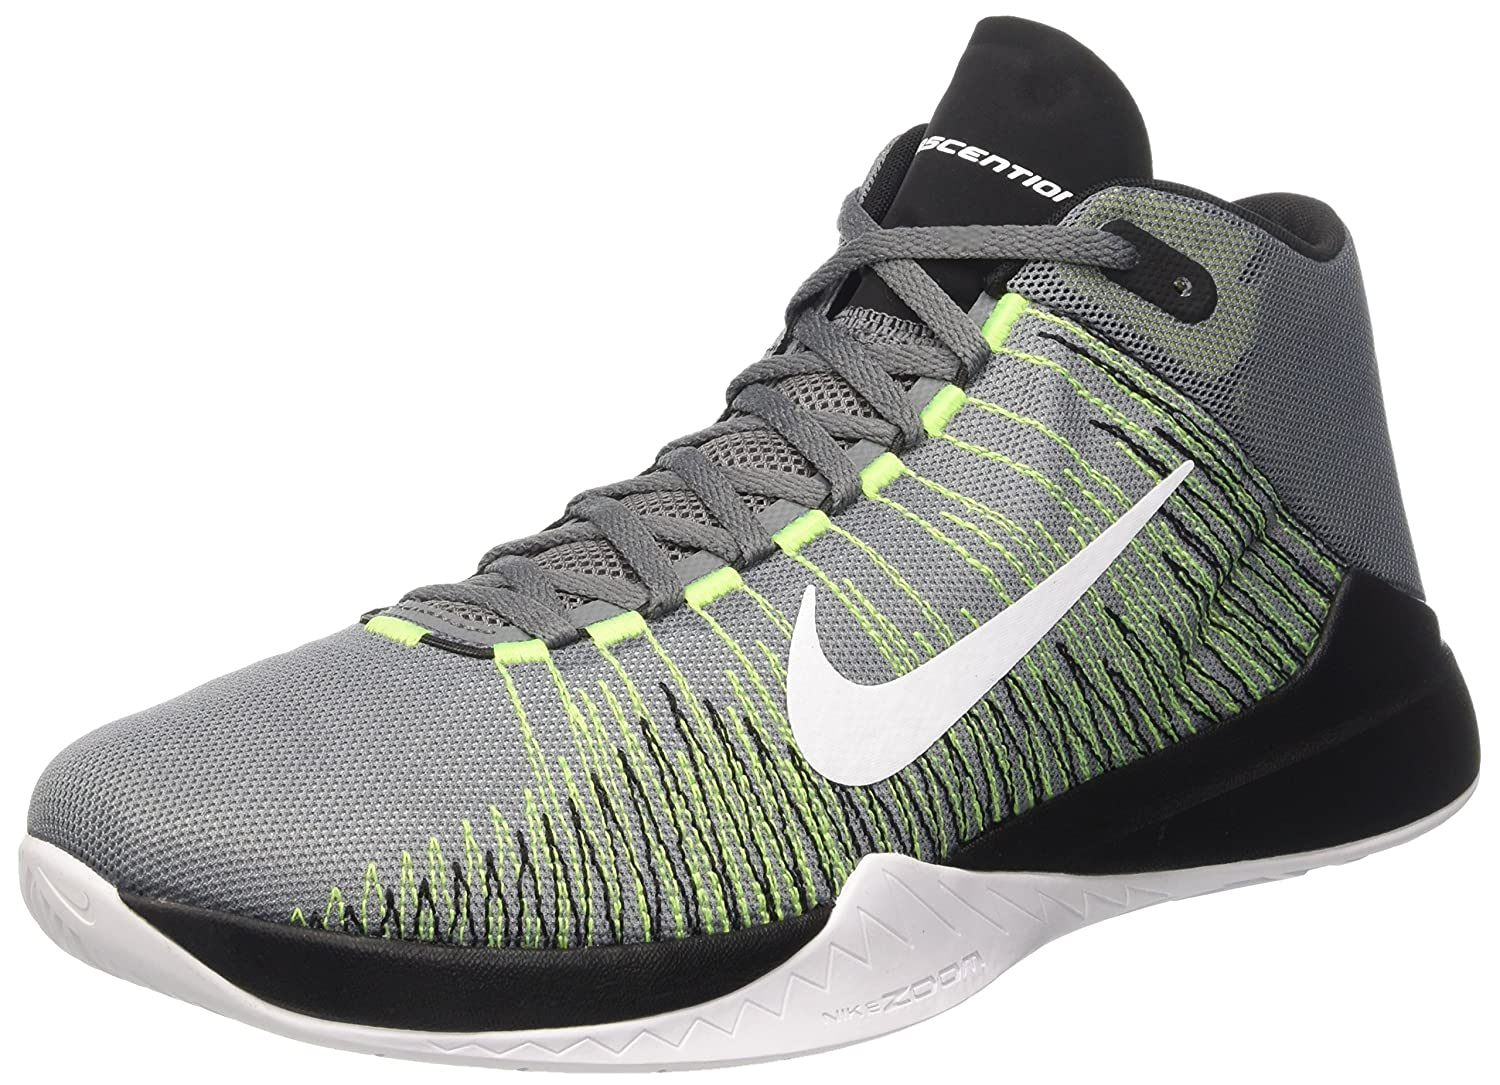 Nike Herren Zoom Ascention Basketballschuhe, Gris (Cool Grey/White-Volt-Black), 45.5 EU -